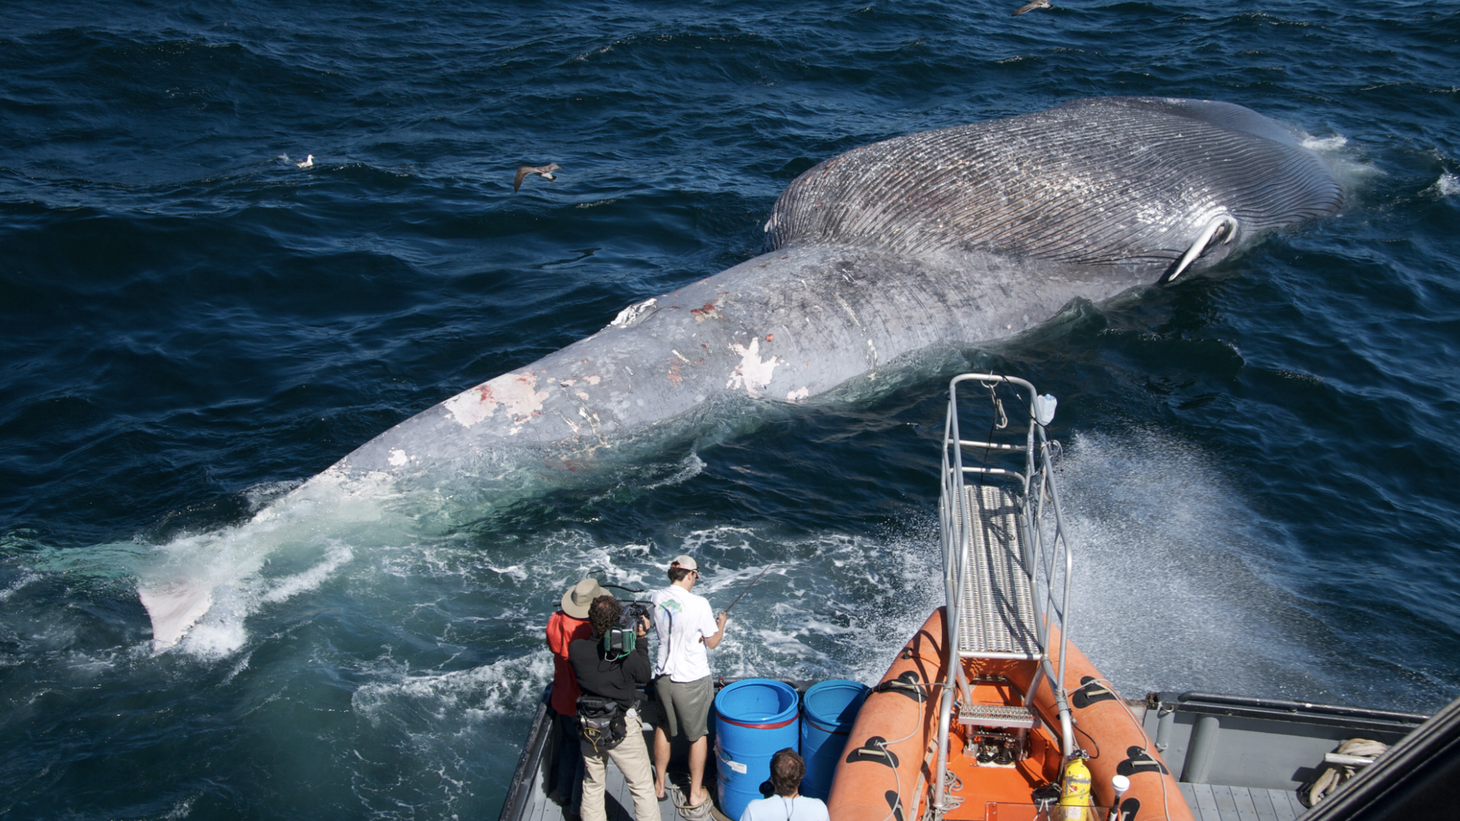 Researchers examine a dead blue whale that was struck by a ship.